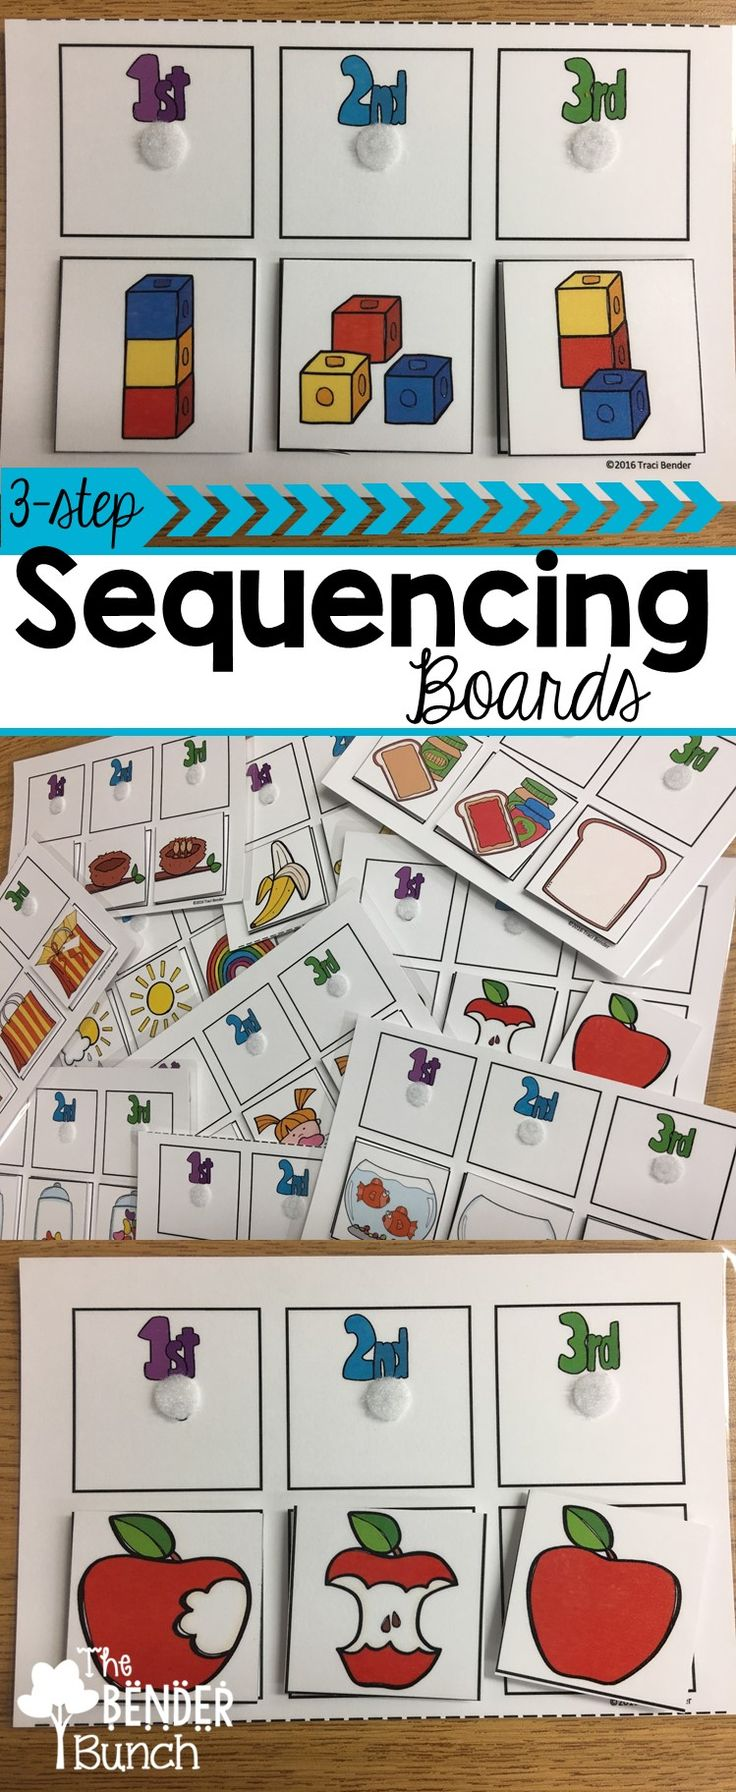 Twenty-eight 3-step sequencing boards allow multiple practice opportunities for beginners!